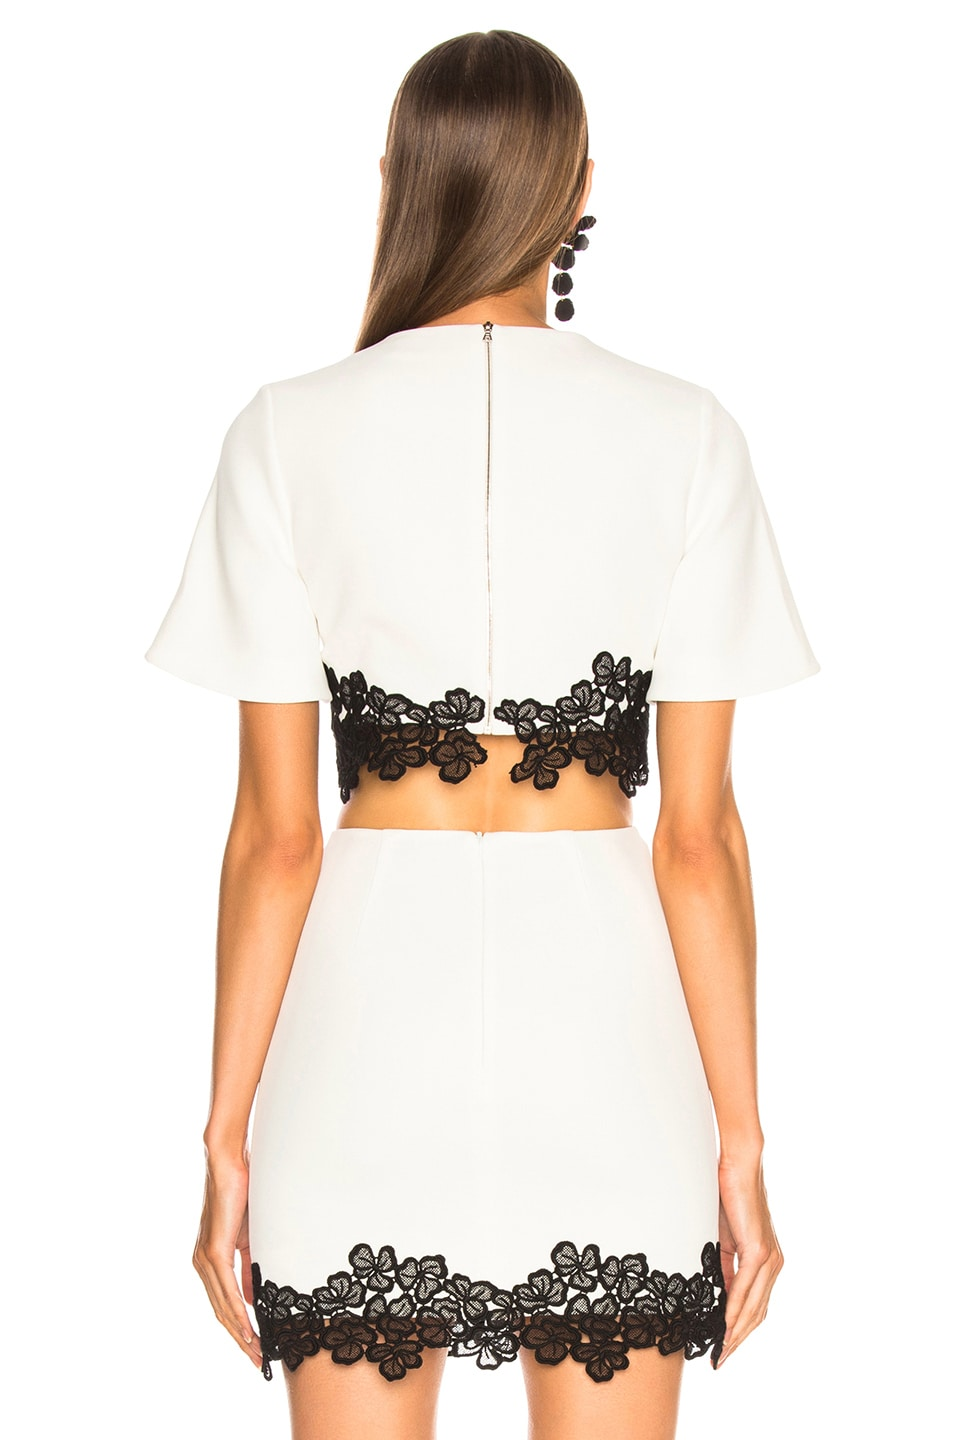 Image 3 of David Koma Lace Trim Cropped Top in White & Black